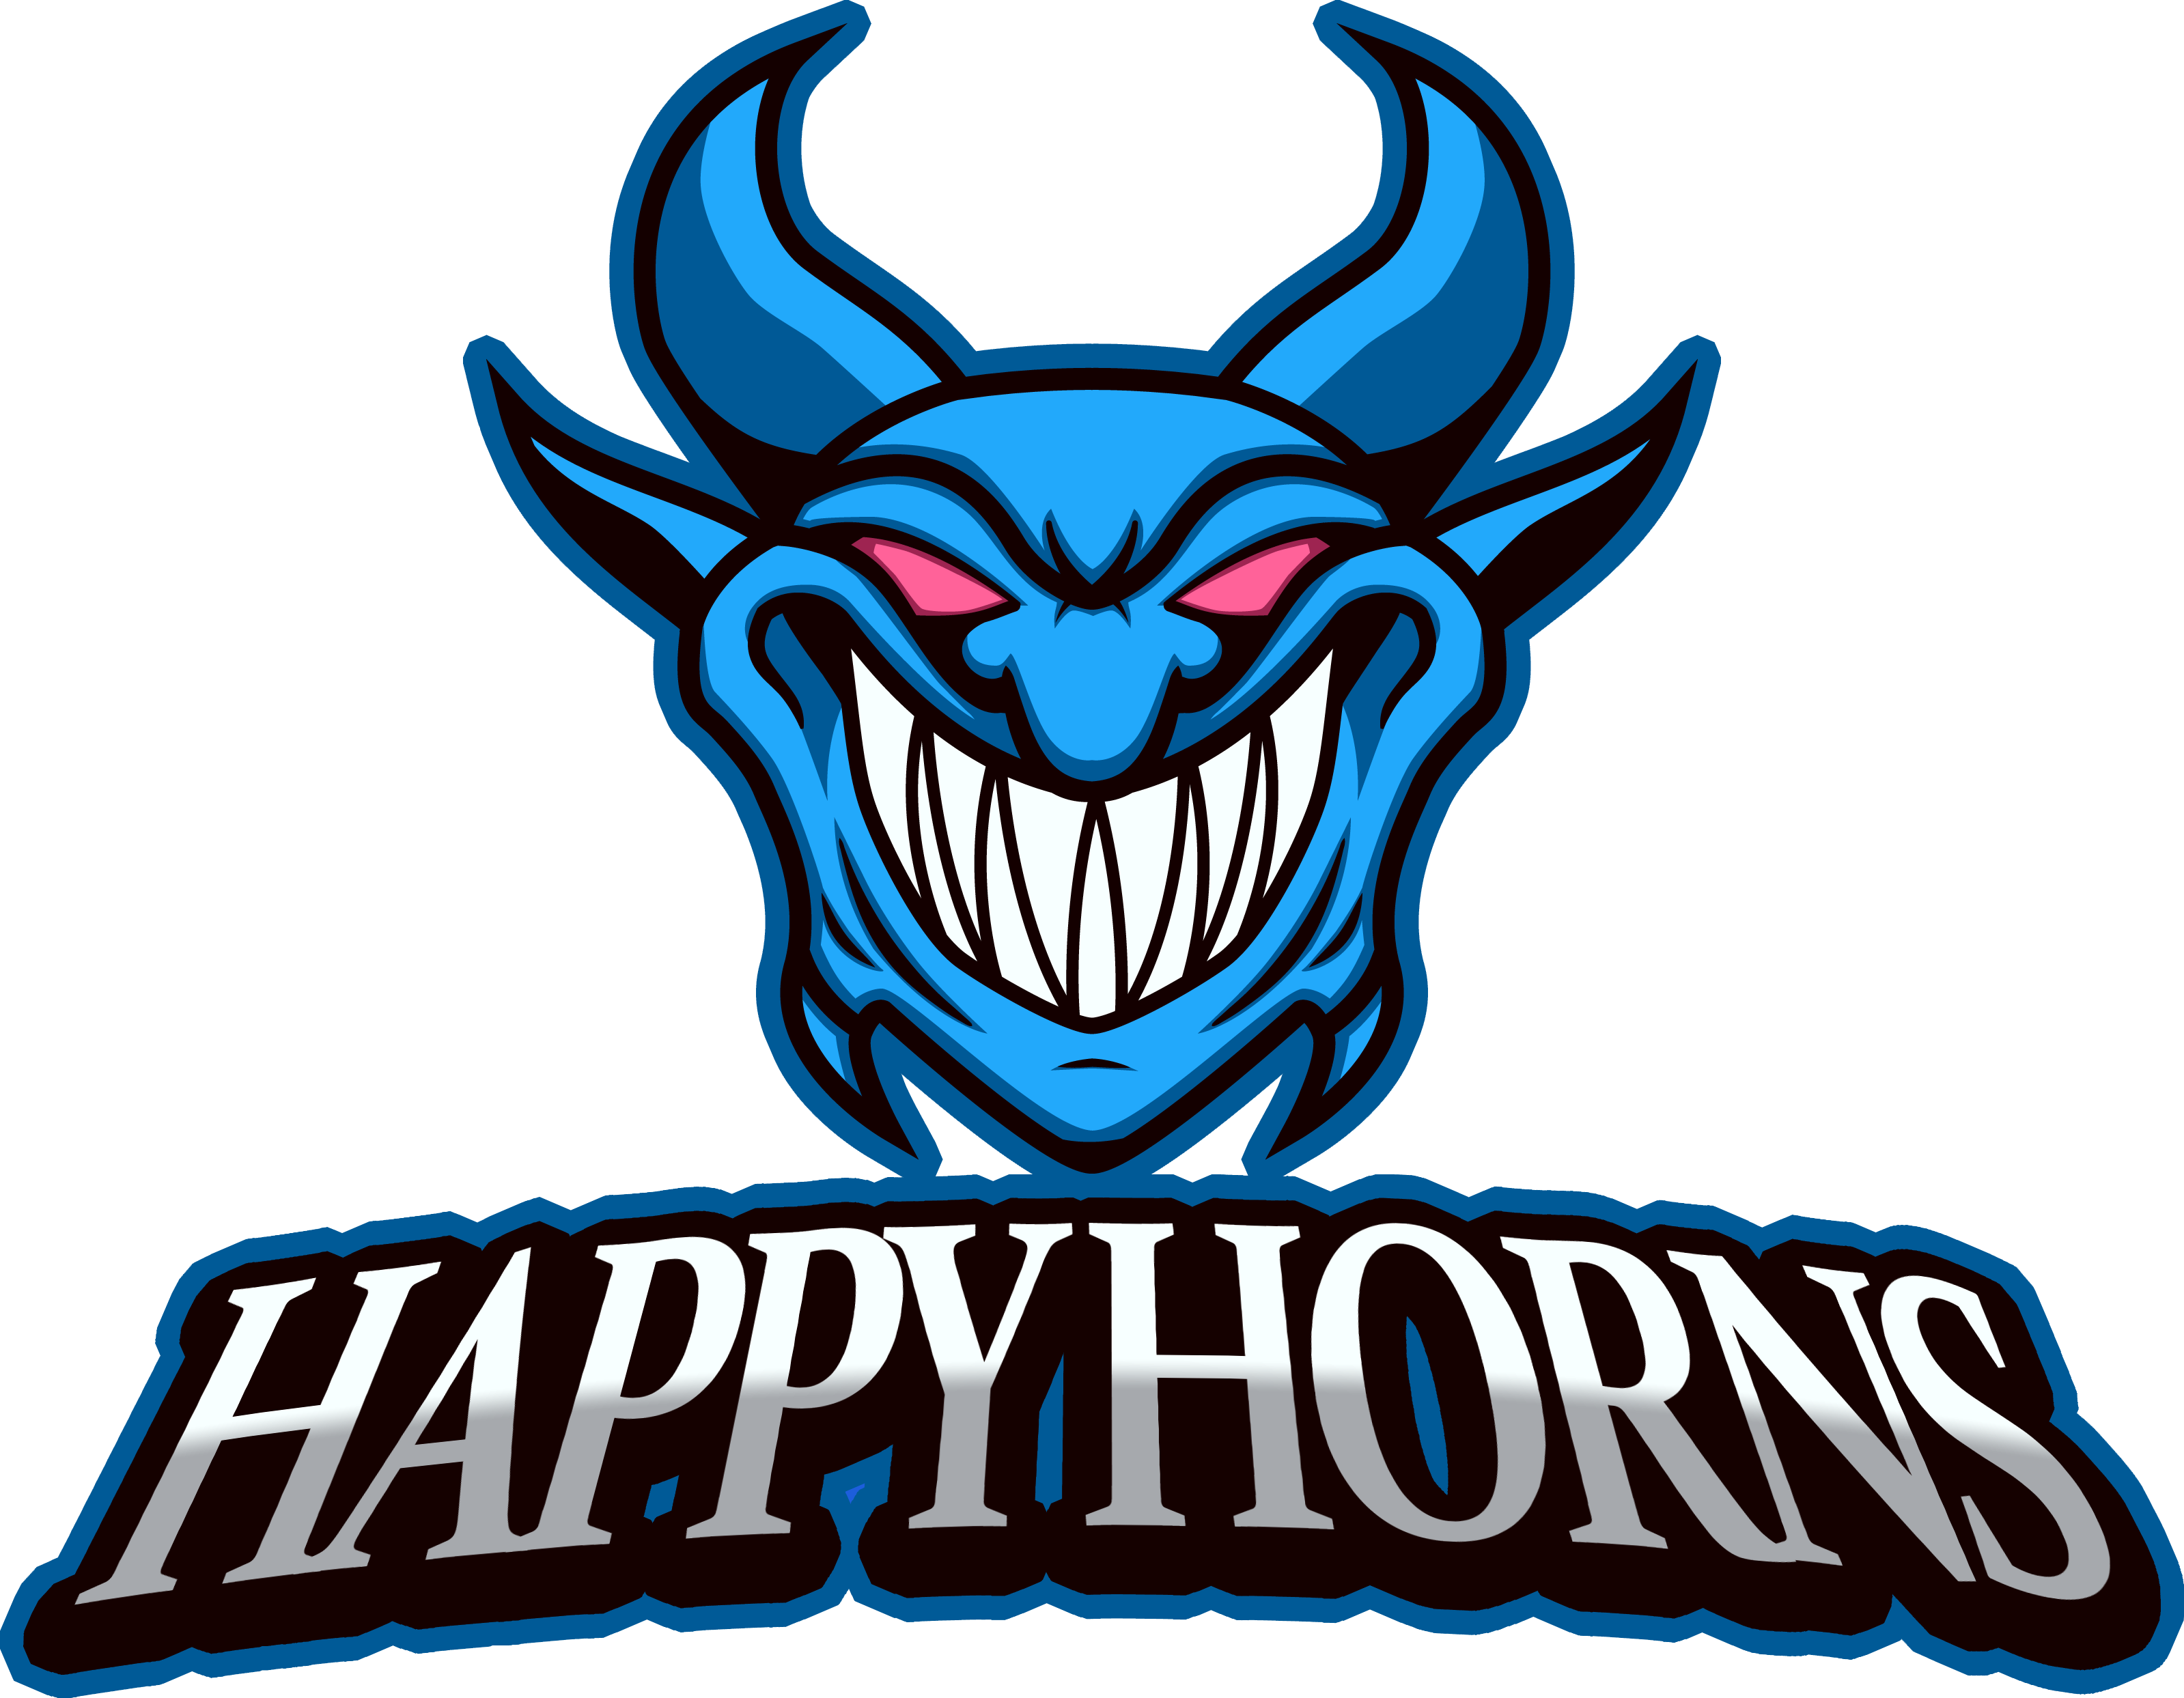 Happy Horns